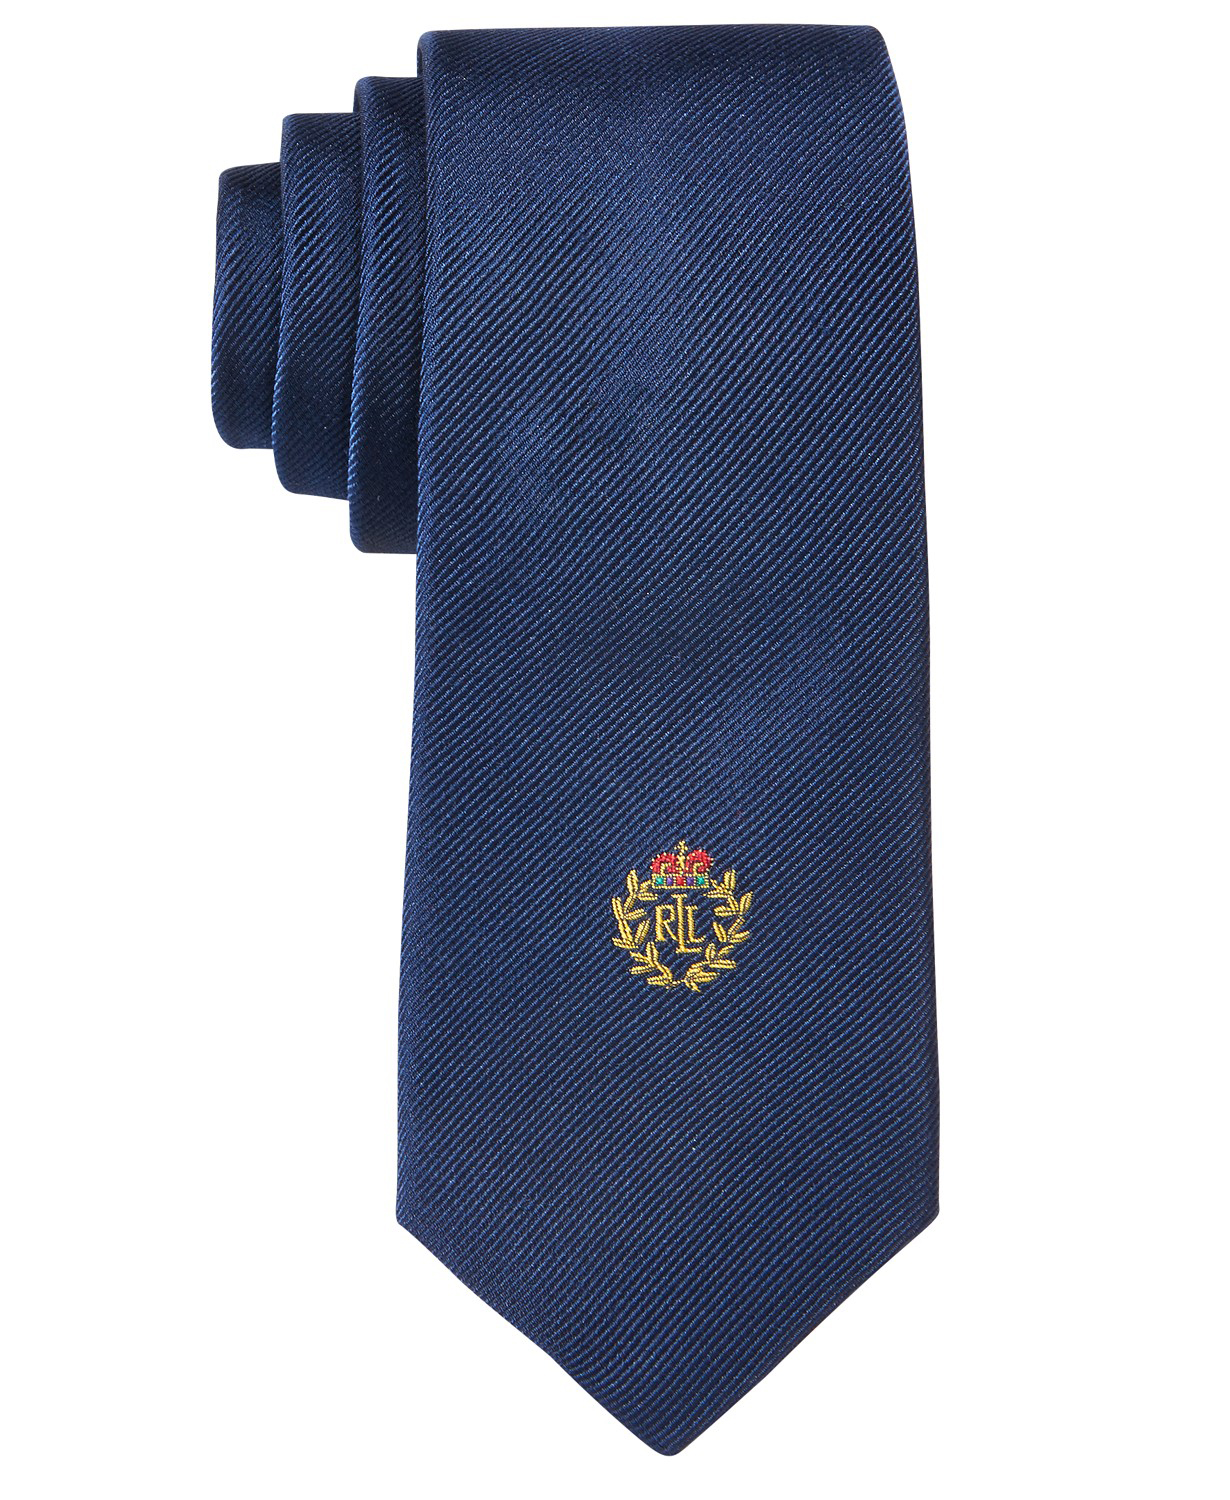 ring bearer solid crest blue tie